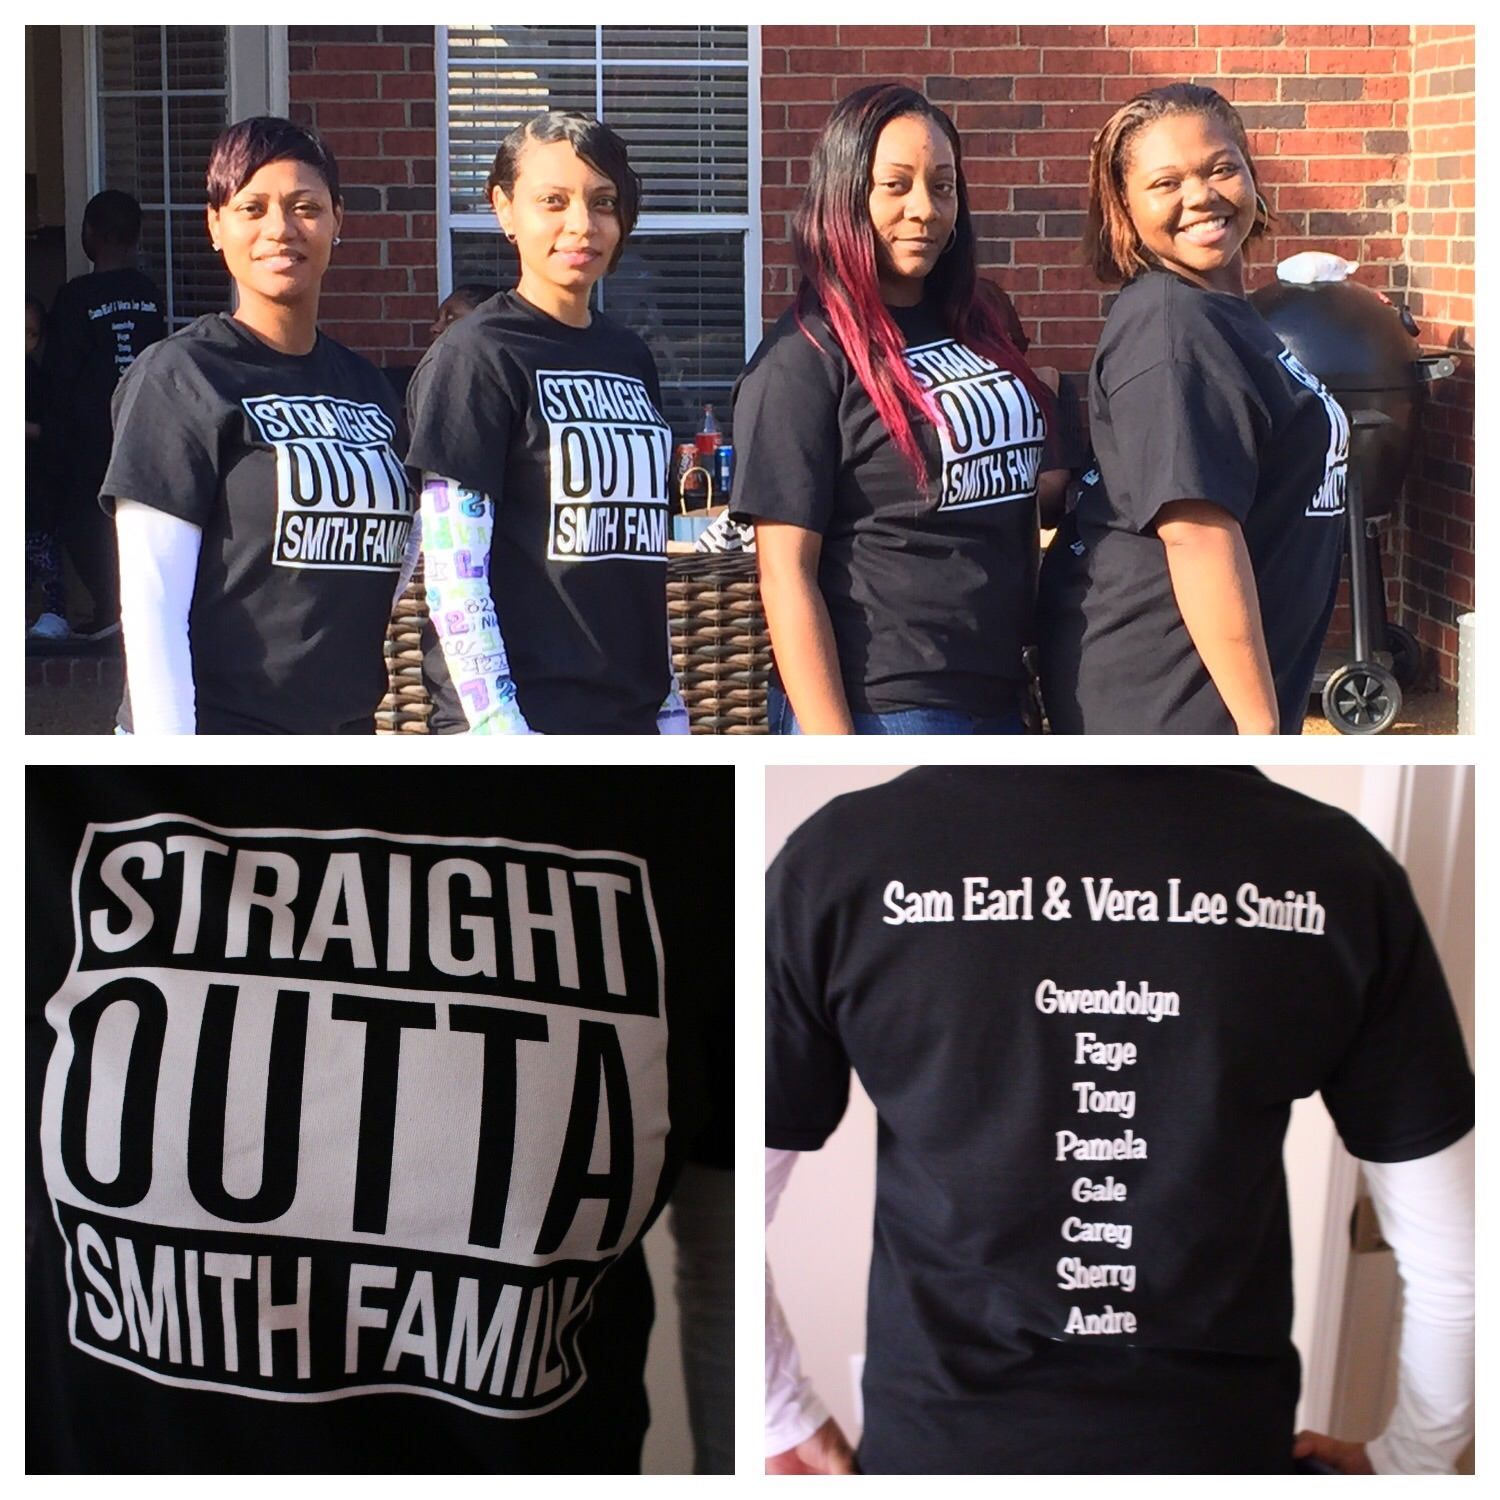 Design tshirt family - Straight Outta Smith Family T Shirt Photo